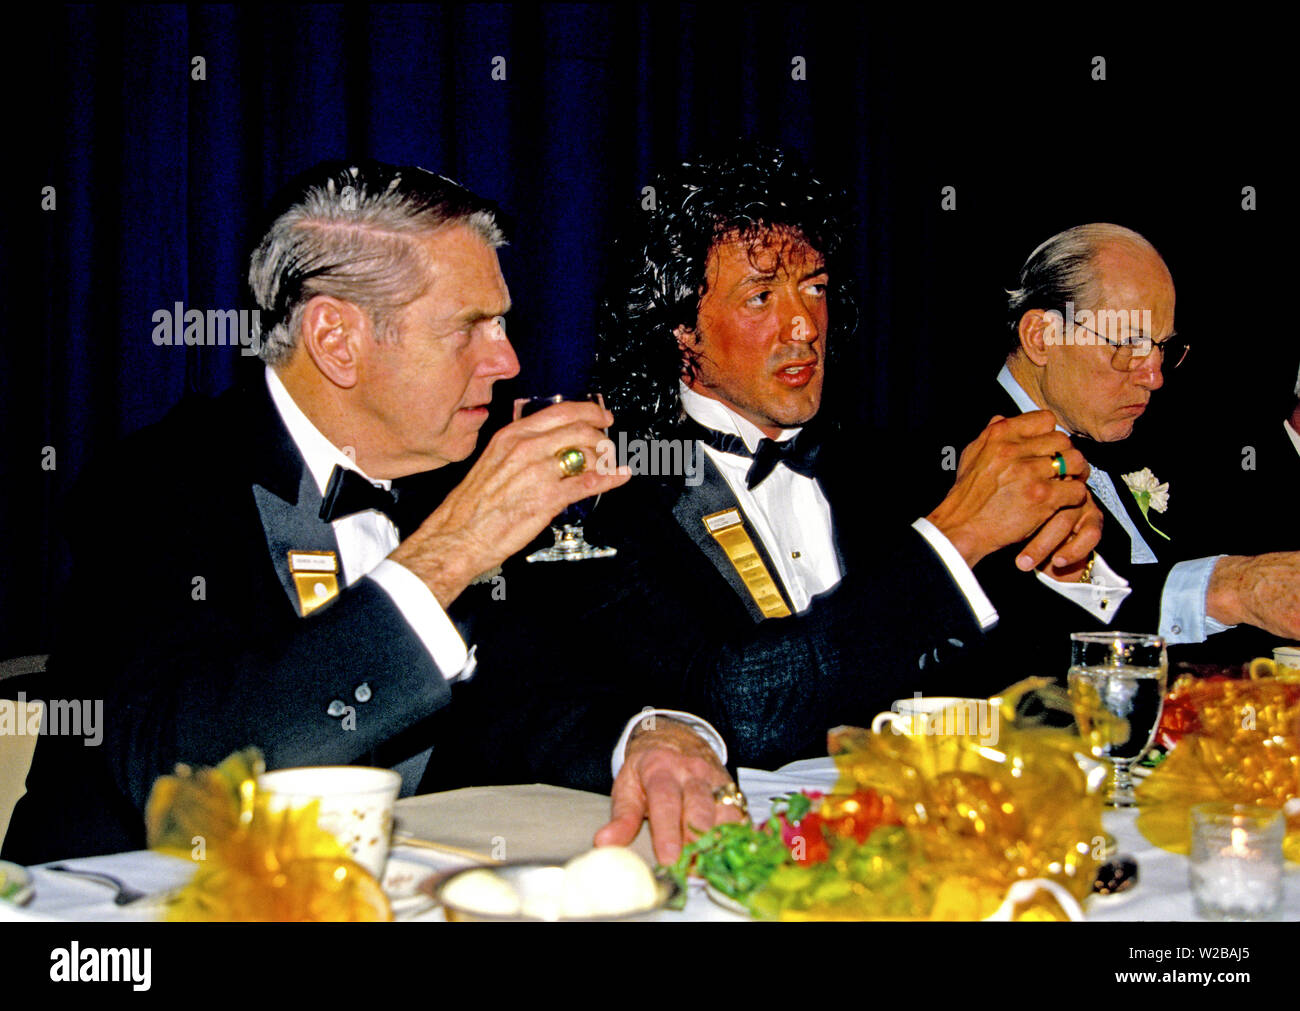 American actor, director, screenwriter, and producer Sylvester Stallone center, attends a dinner as he accepts the President's Council on Physical Fitness award at the Washington, DC Touchdown Club dinner in Washington, DC on January 23, 1988. At left is former Washington Redskins head coach George Allen and at right is Associate Justice of the United States Supreme Court Byron R. 'Whizzer' White.Credit: Arnie Sachs/CNP | usage worldwide - Stock Image